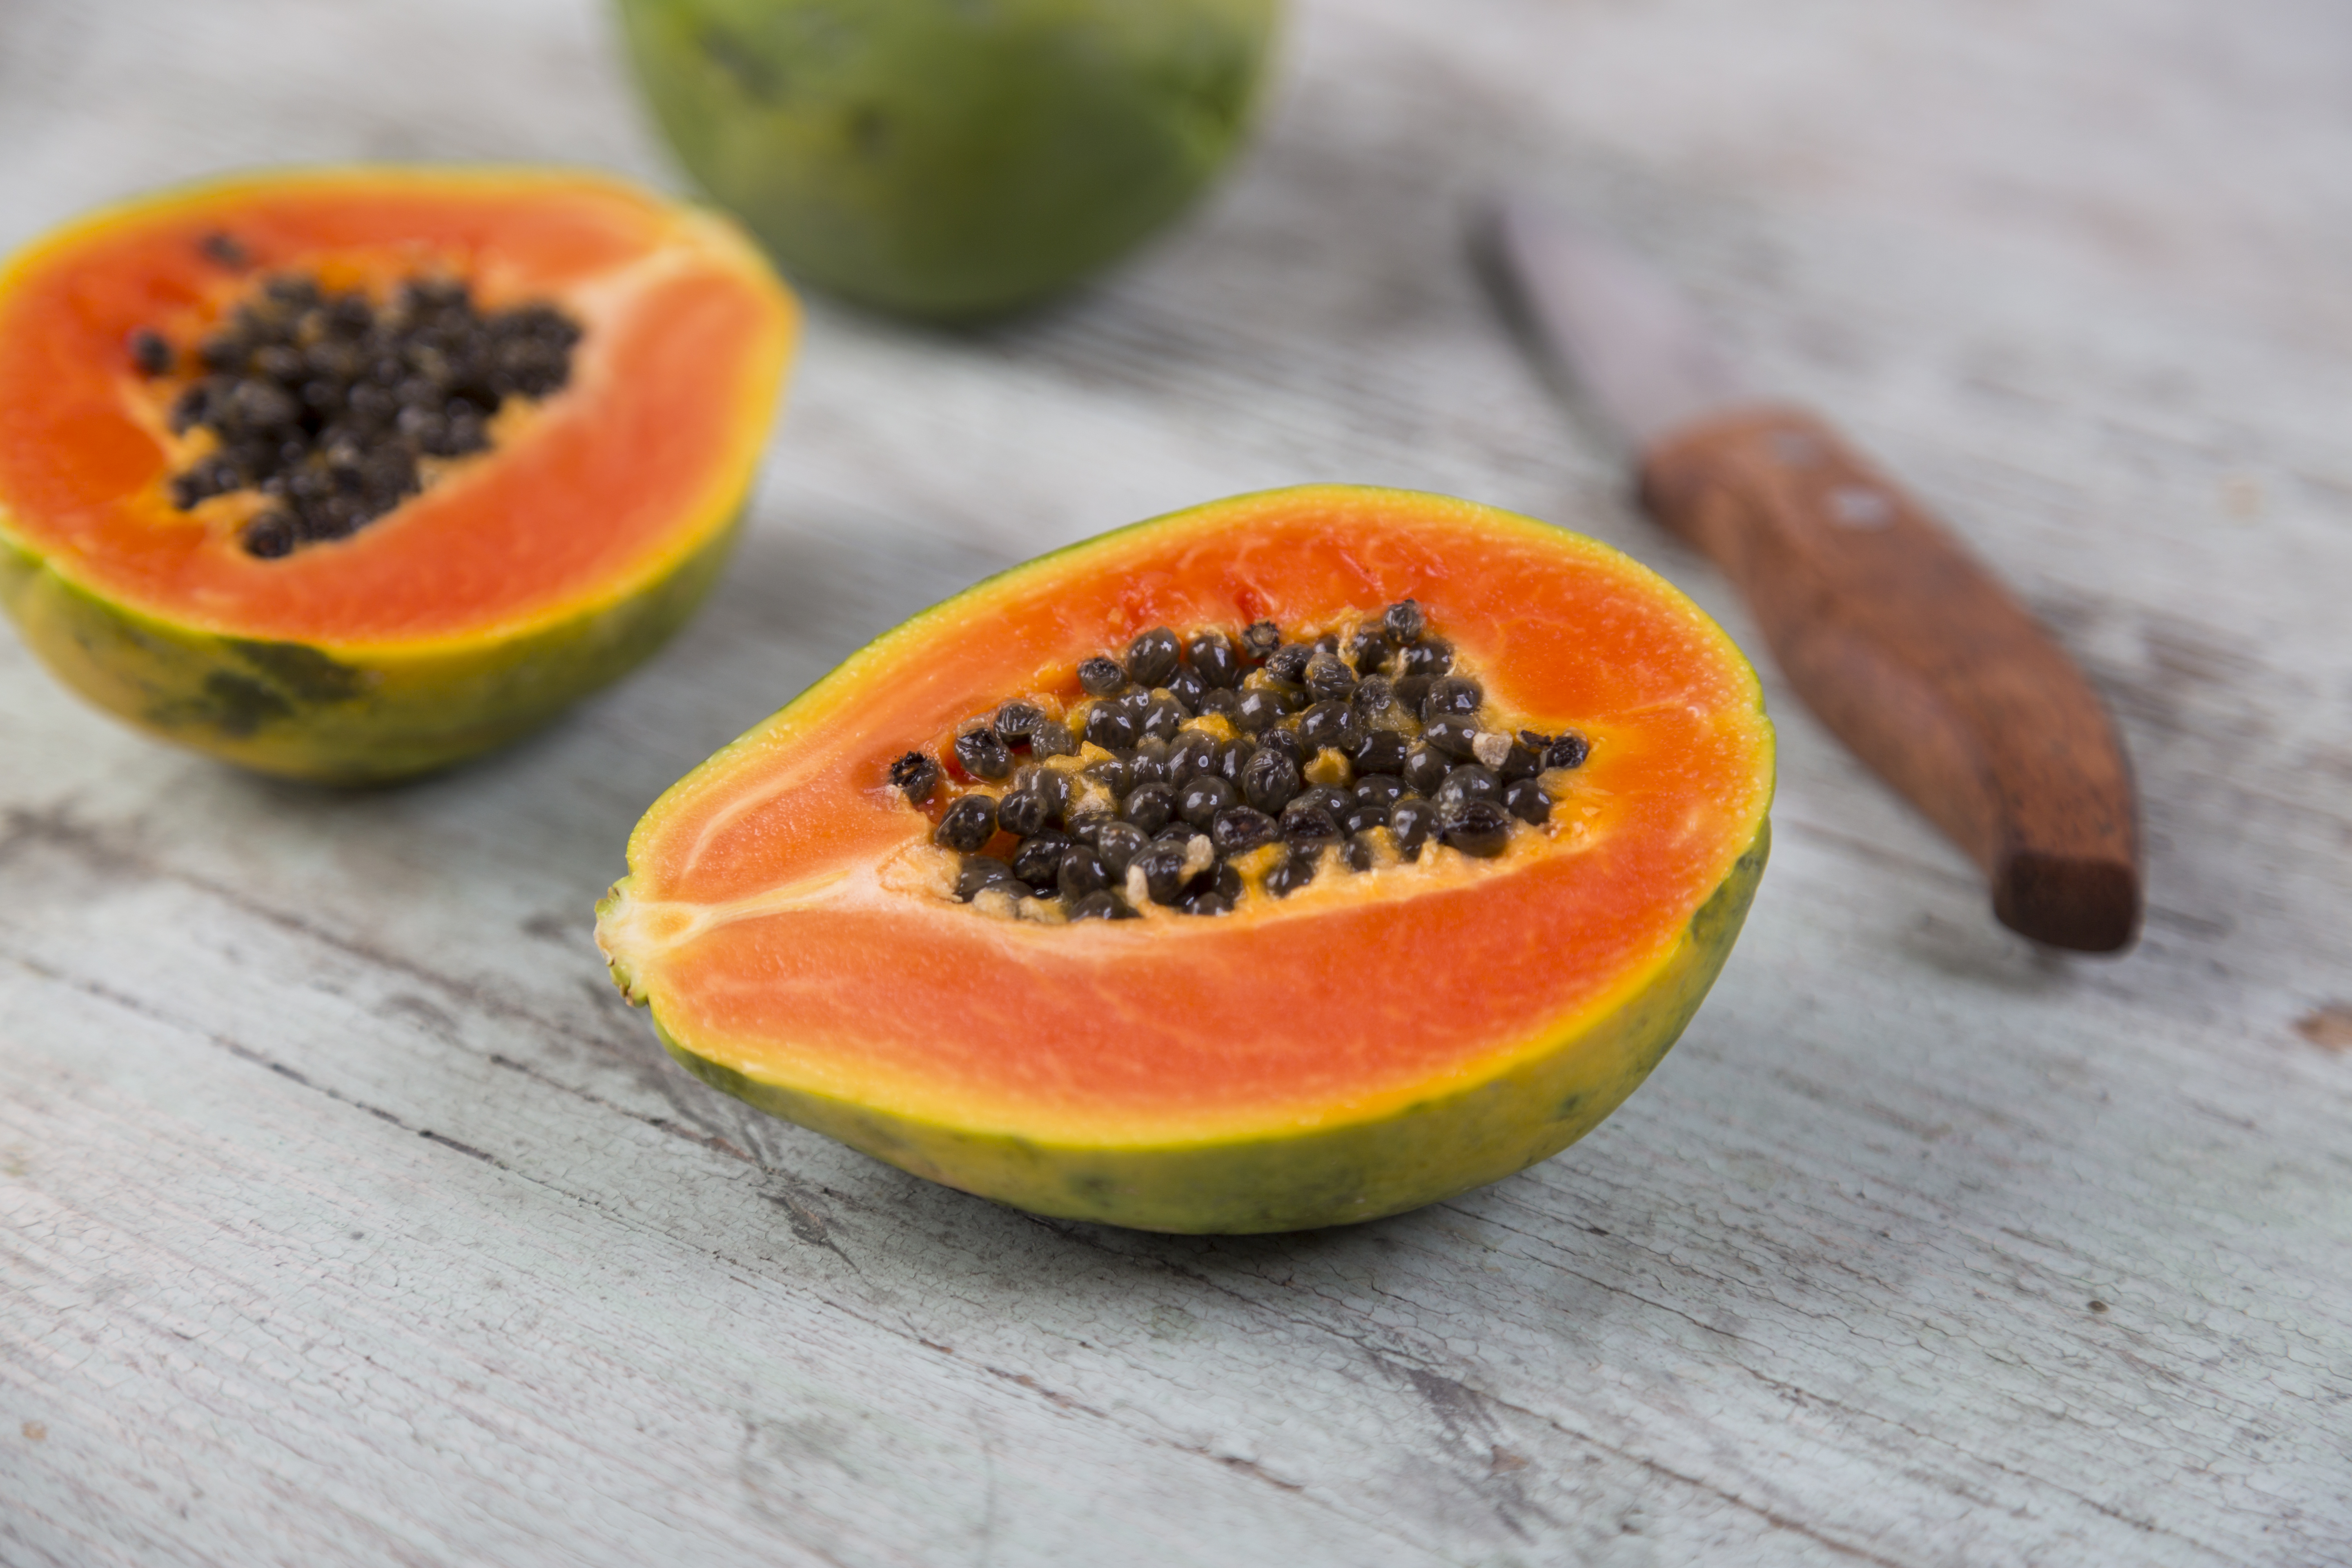 Is Papaya Good for You When You Want to Lose Weight? | Healthy